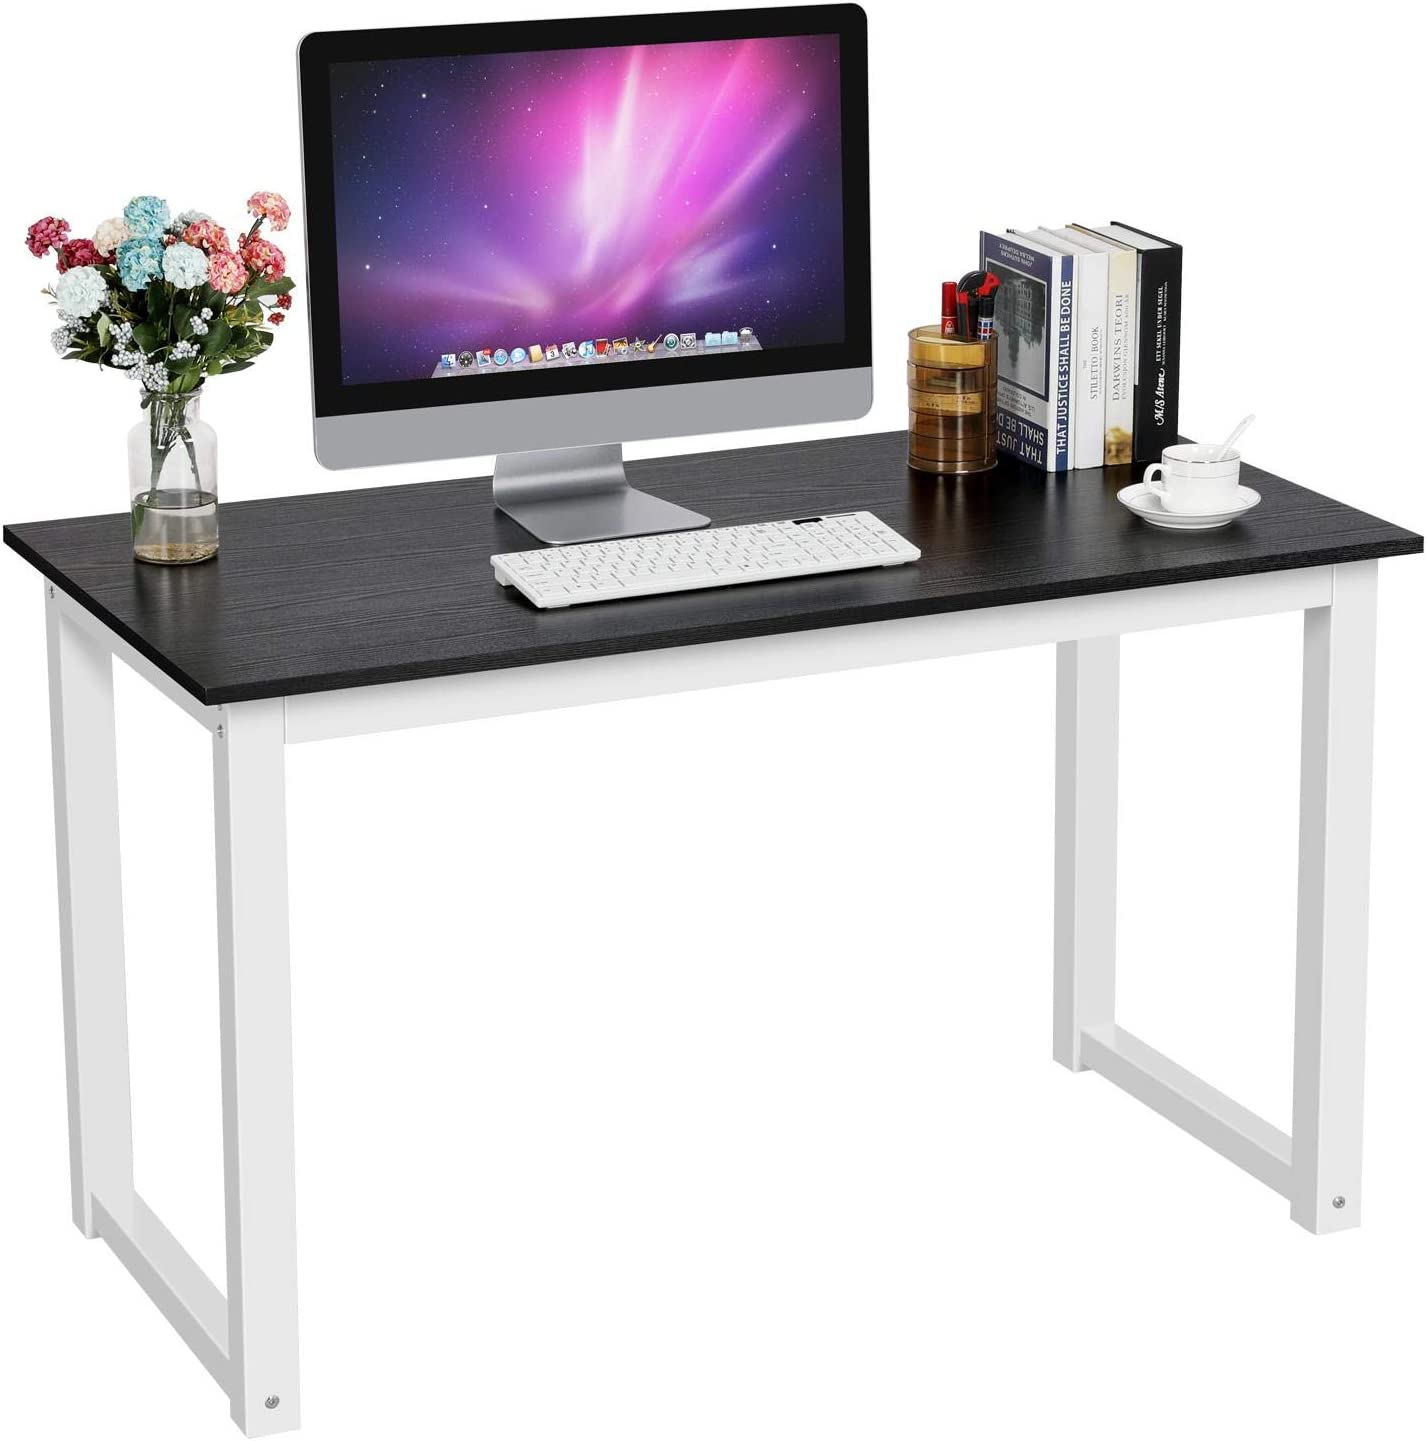 YAHEETECH Simple Computer Desk, PC Laptop Writing Study Table, Gaming  Computer Table, Workstation Wood Desktop Metal Frame, Modern Home Office